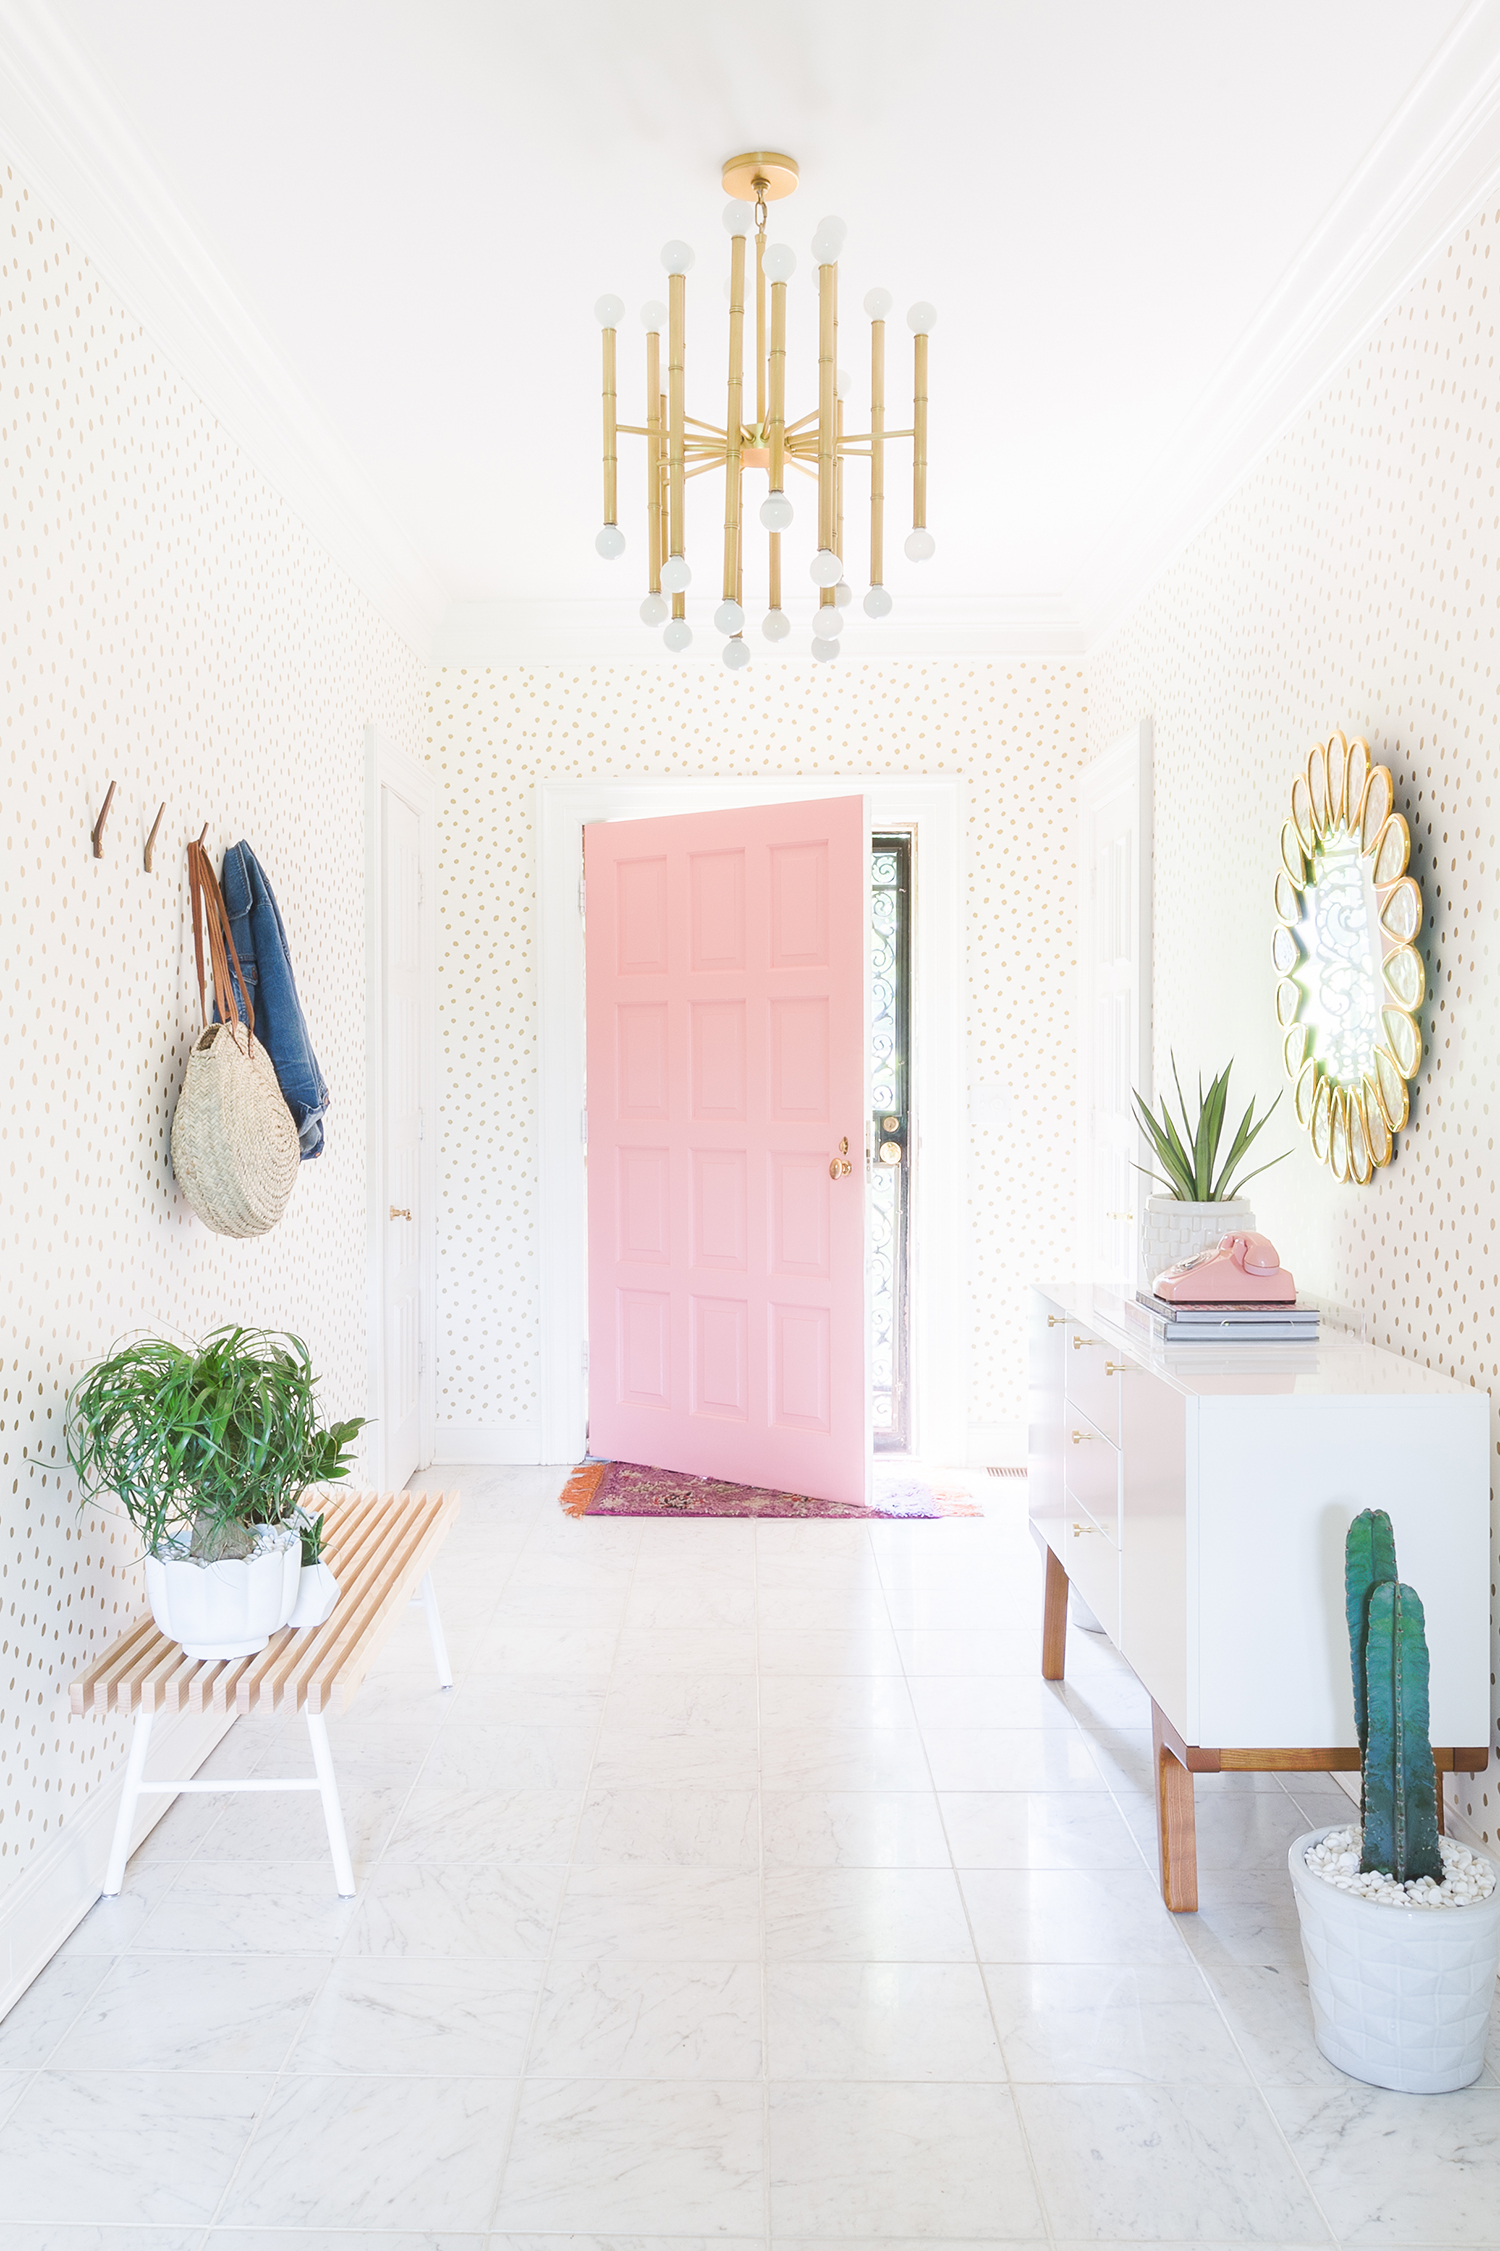 Entryway + blush pink door ©AlyssaRosenheck